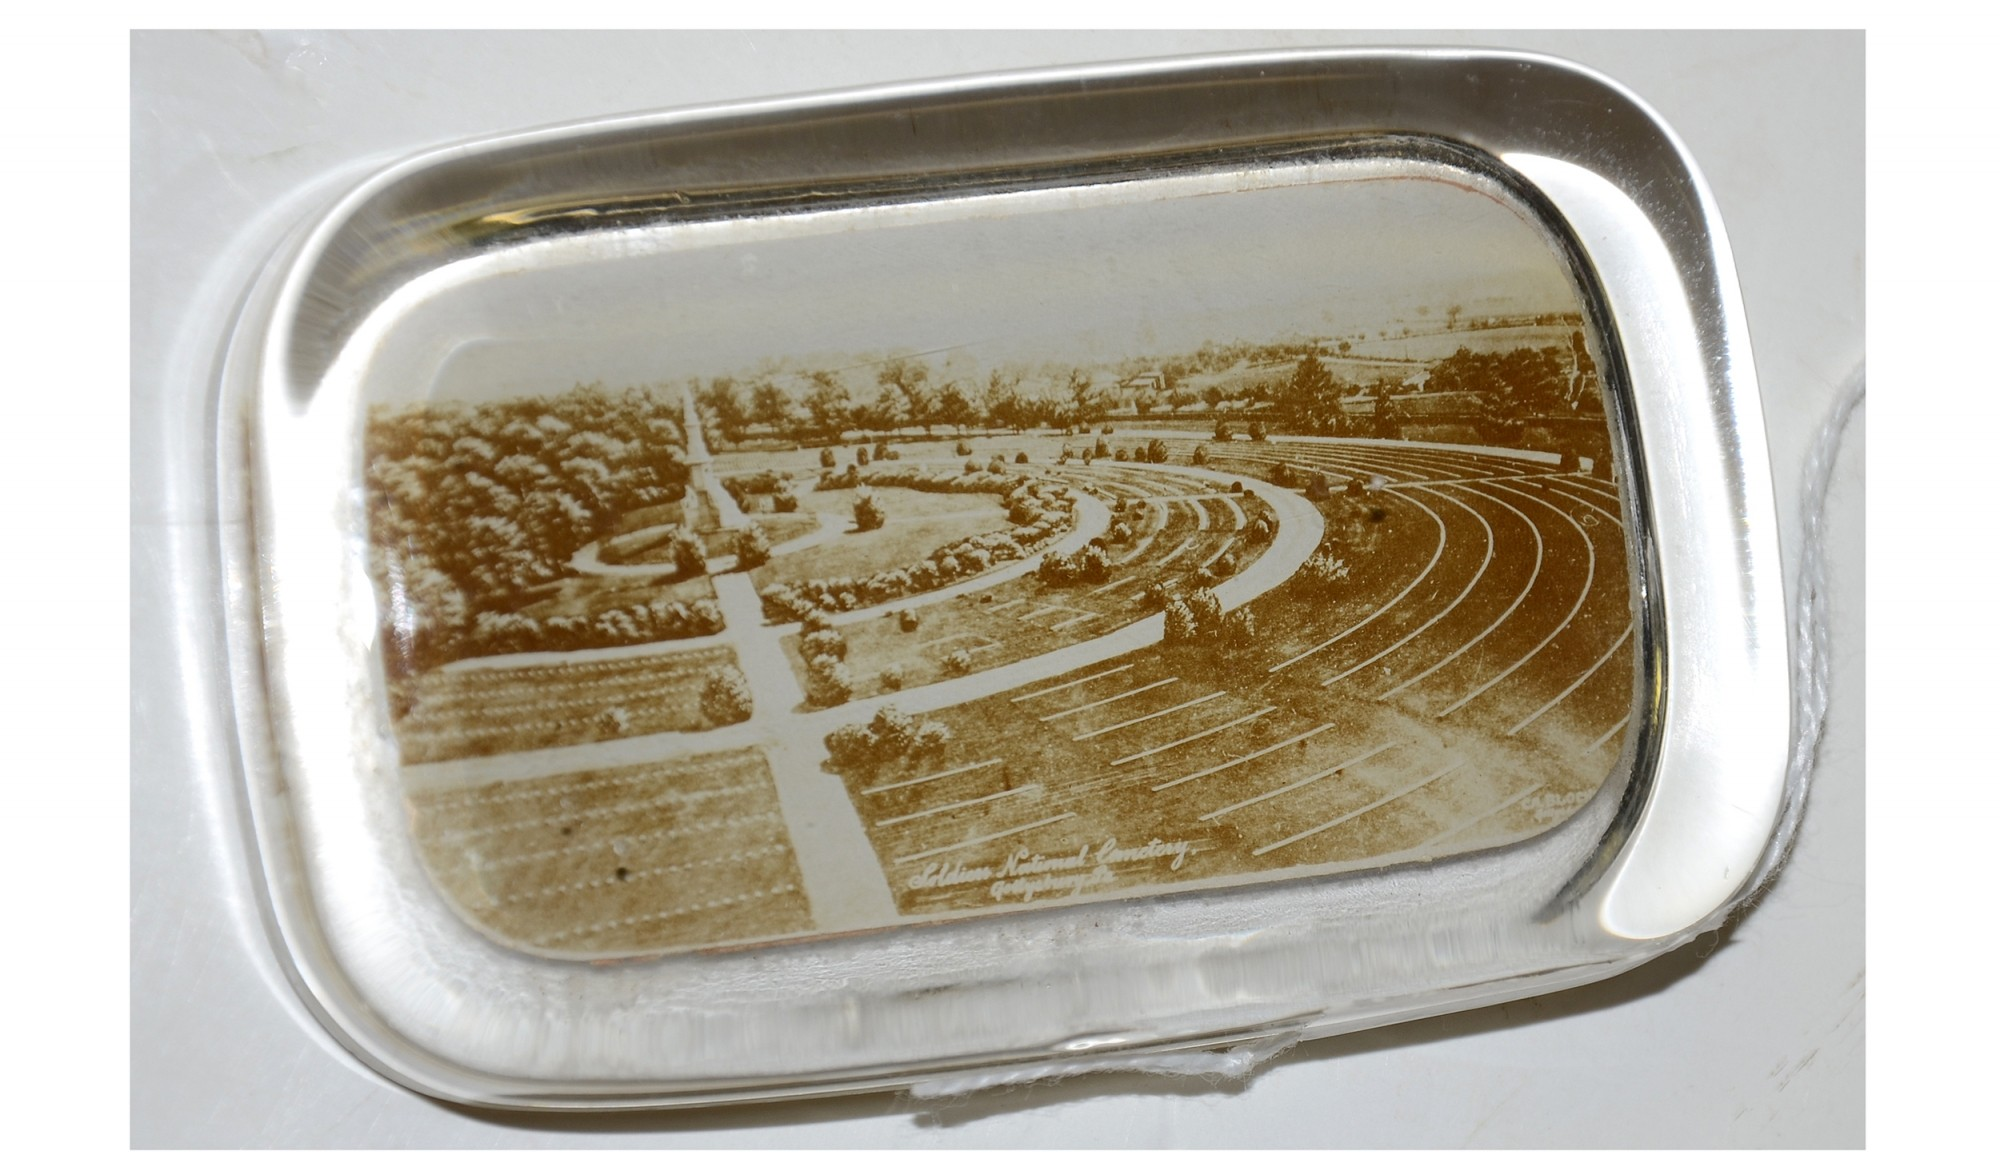 HEAVY GLASS PAPERWEIGHT WITH VIEW OF GETTYSBURG NATIONAL CEMETERY